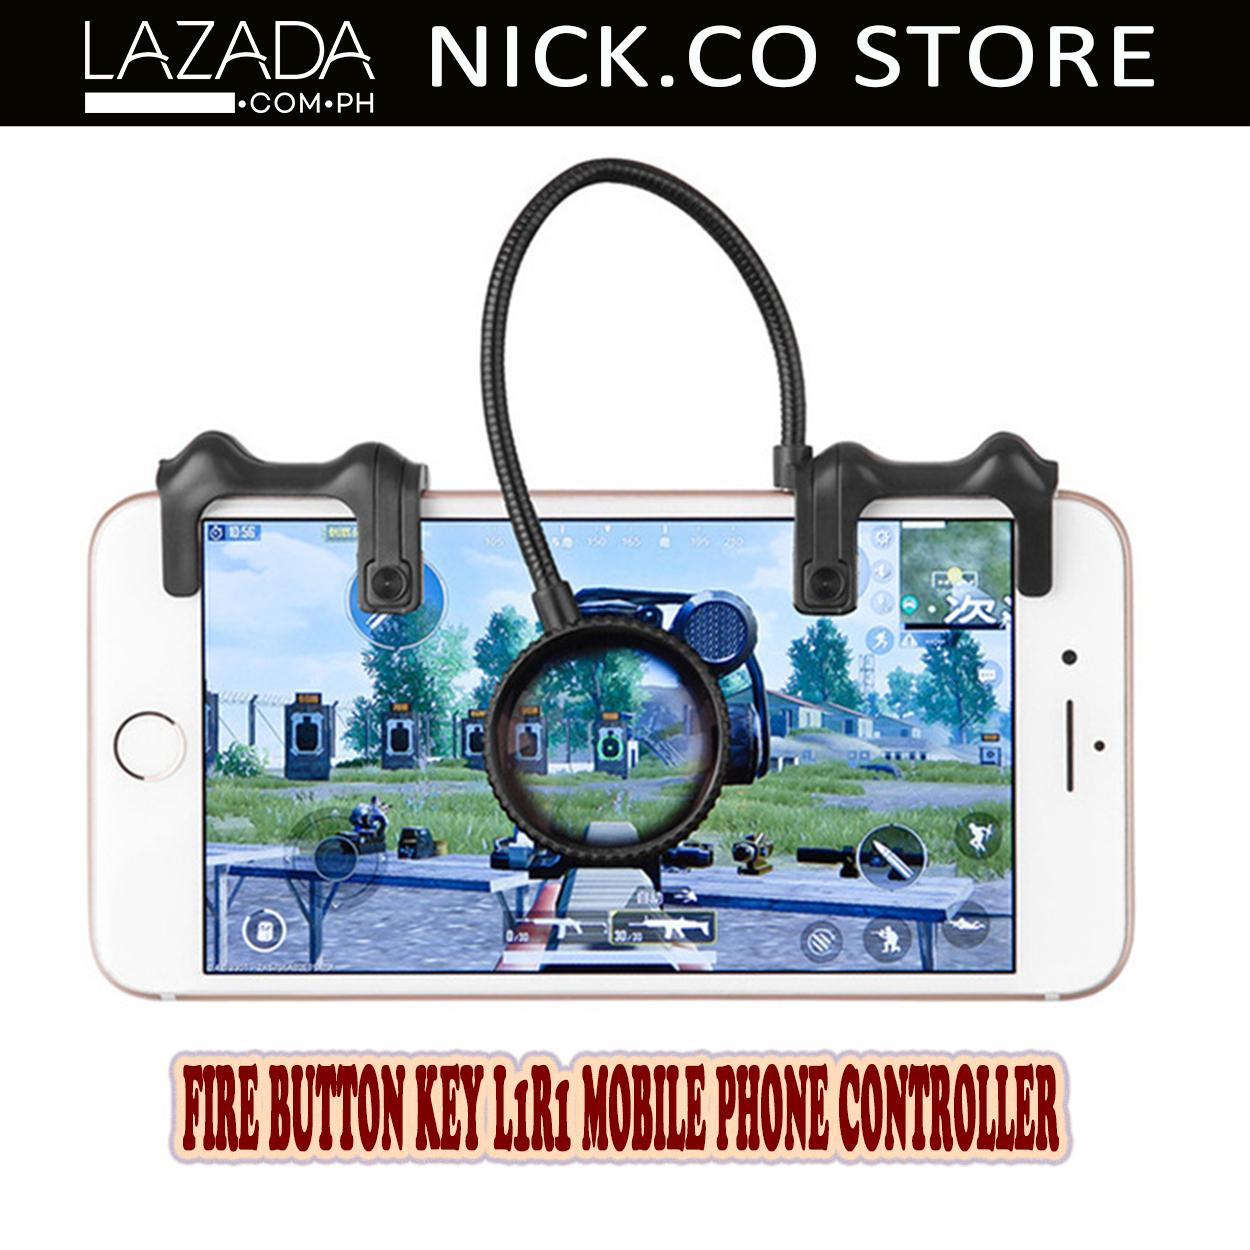 Promotions Catalogs L1 R1 Sharp Shooter Pubg Mobile Joystick Rule Of Survival Versi 3 Key Buttons Cell Phone Game Controller For All Android Magnifying Glass